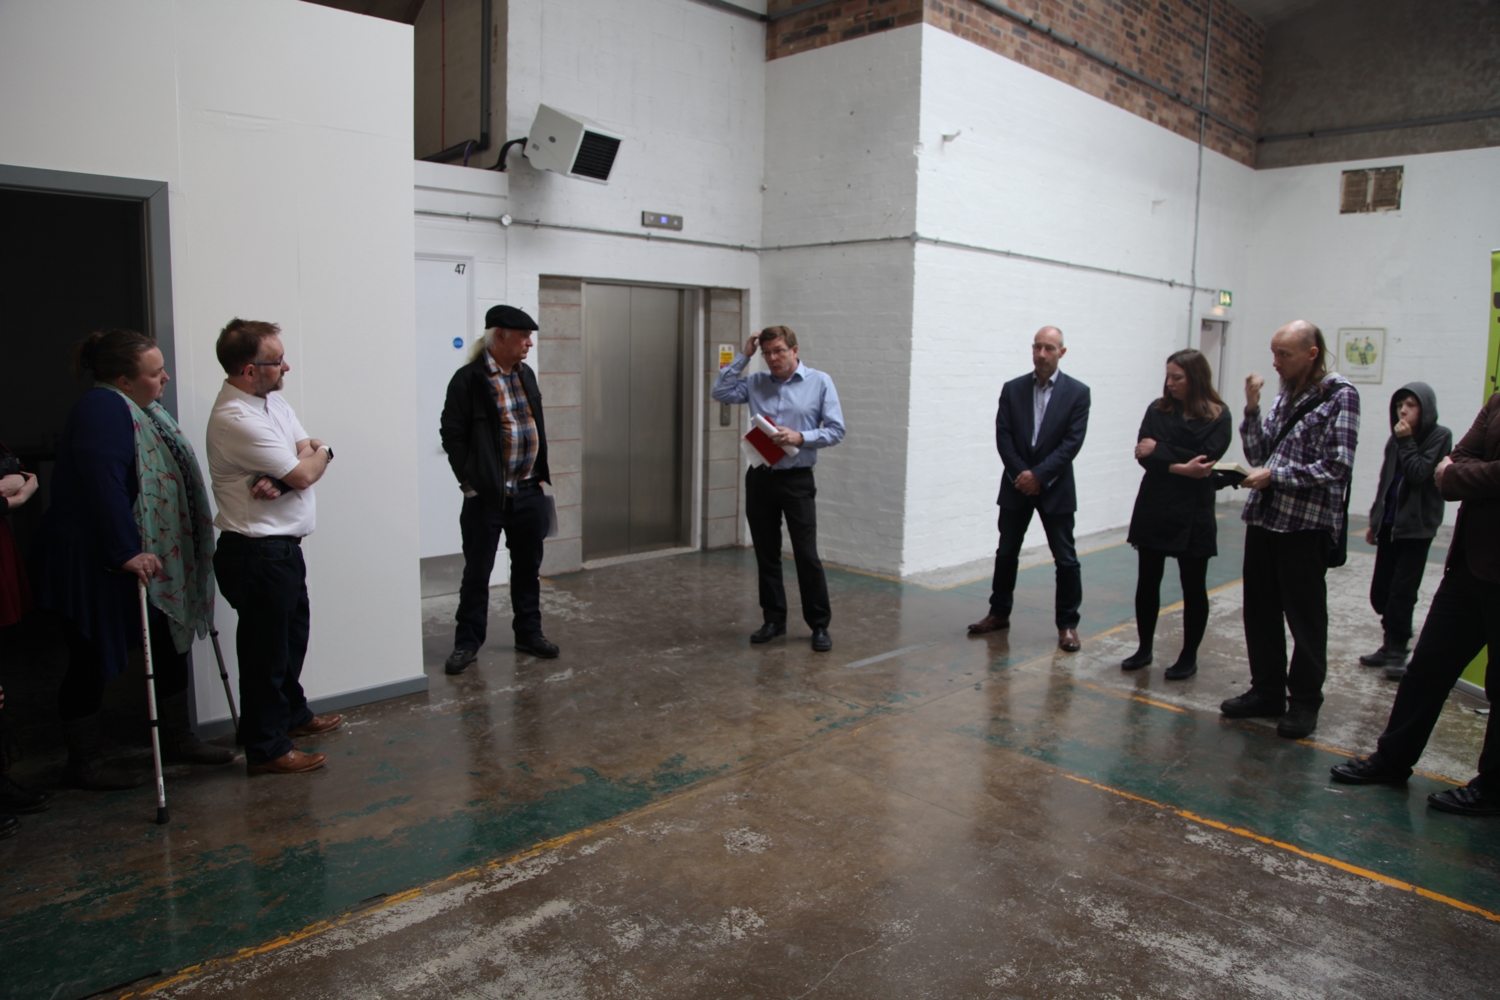 Acava Studios Spode Works: Studios Interior With Visitors